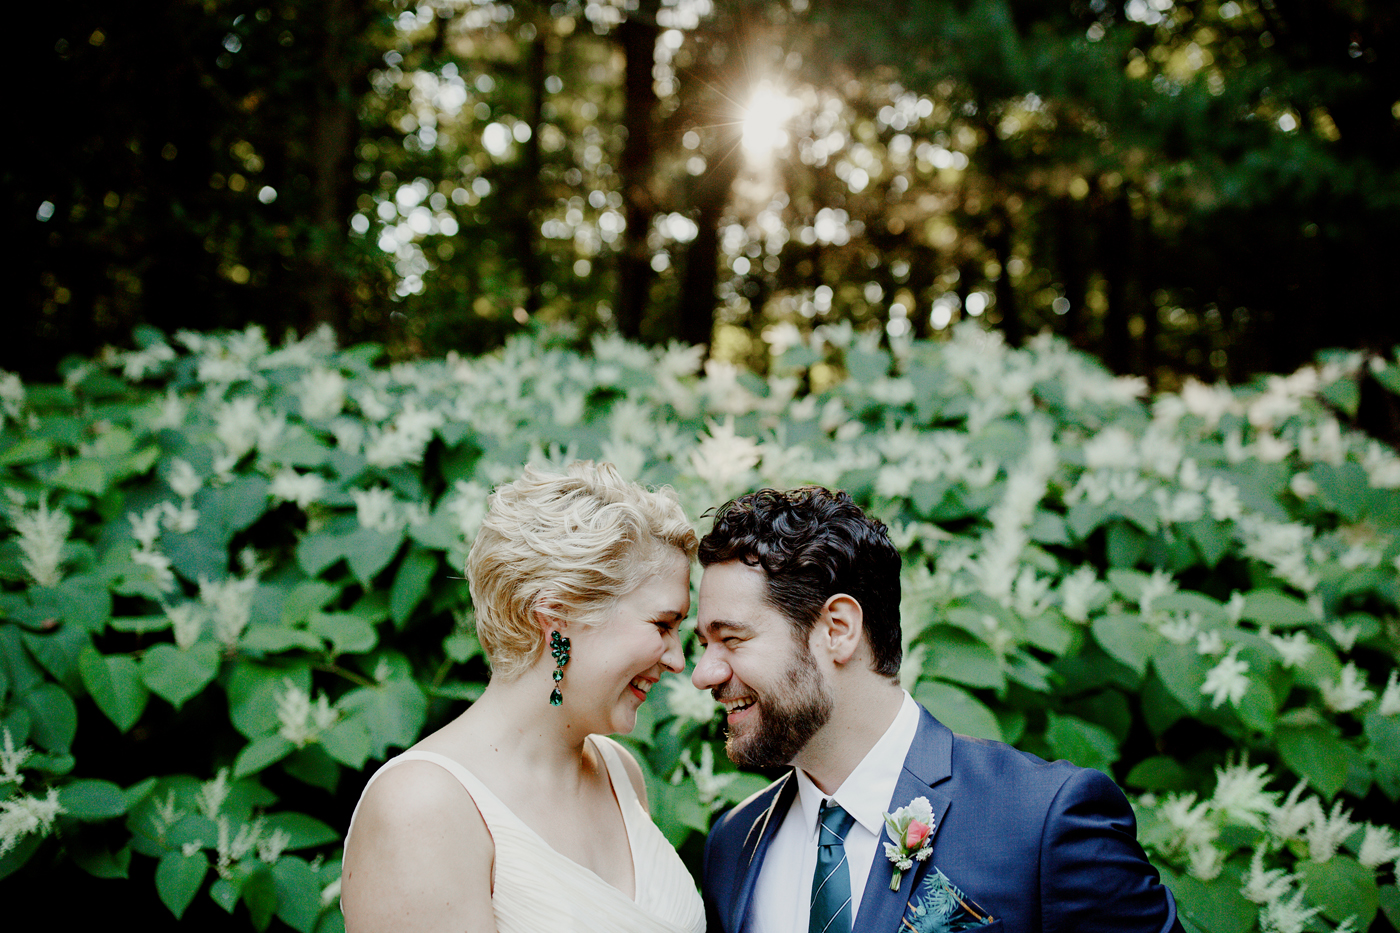 amandavanvels_backyardwedding_0361.jpg